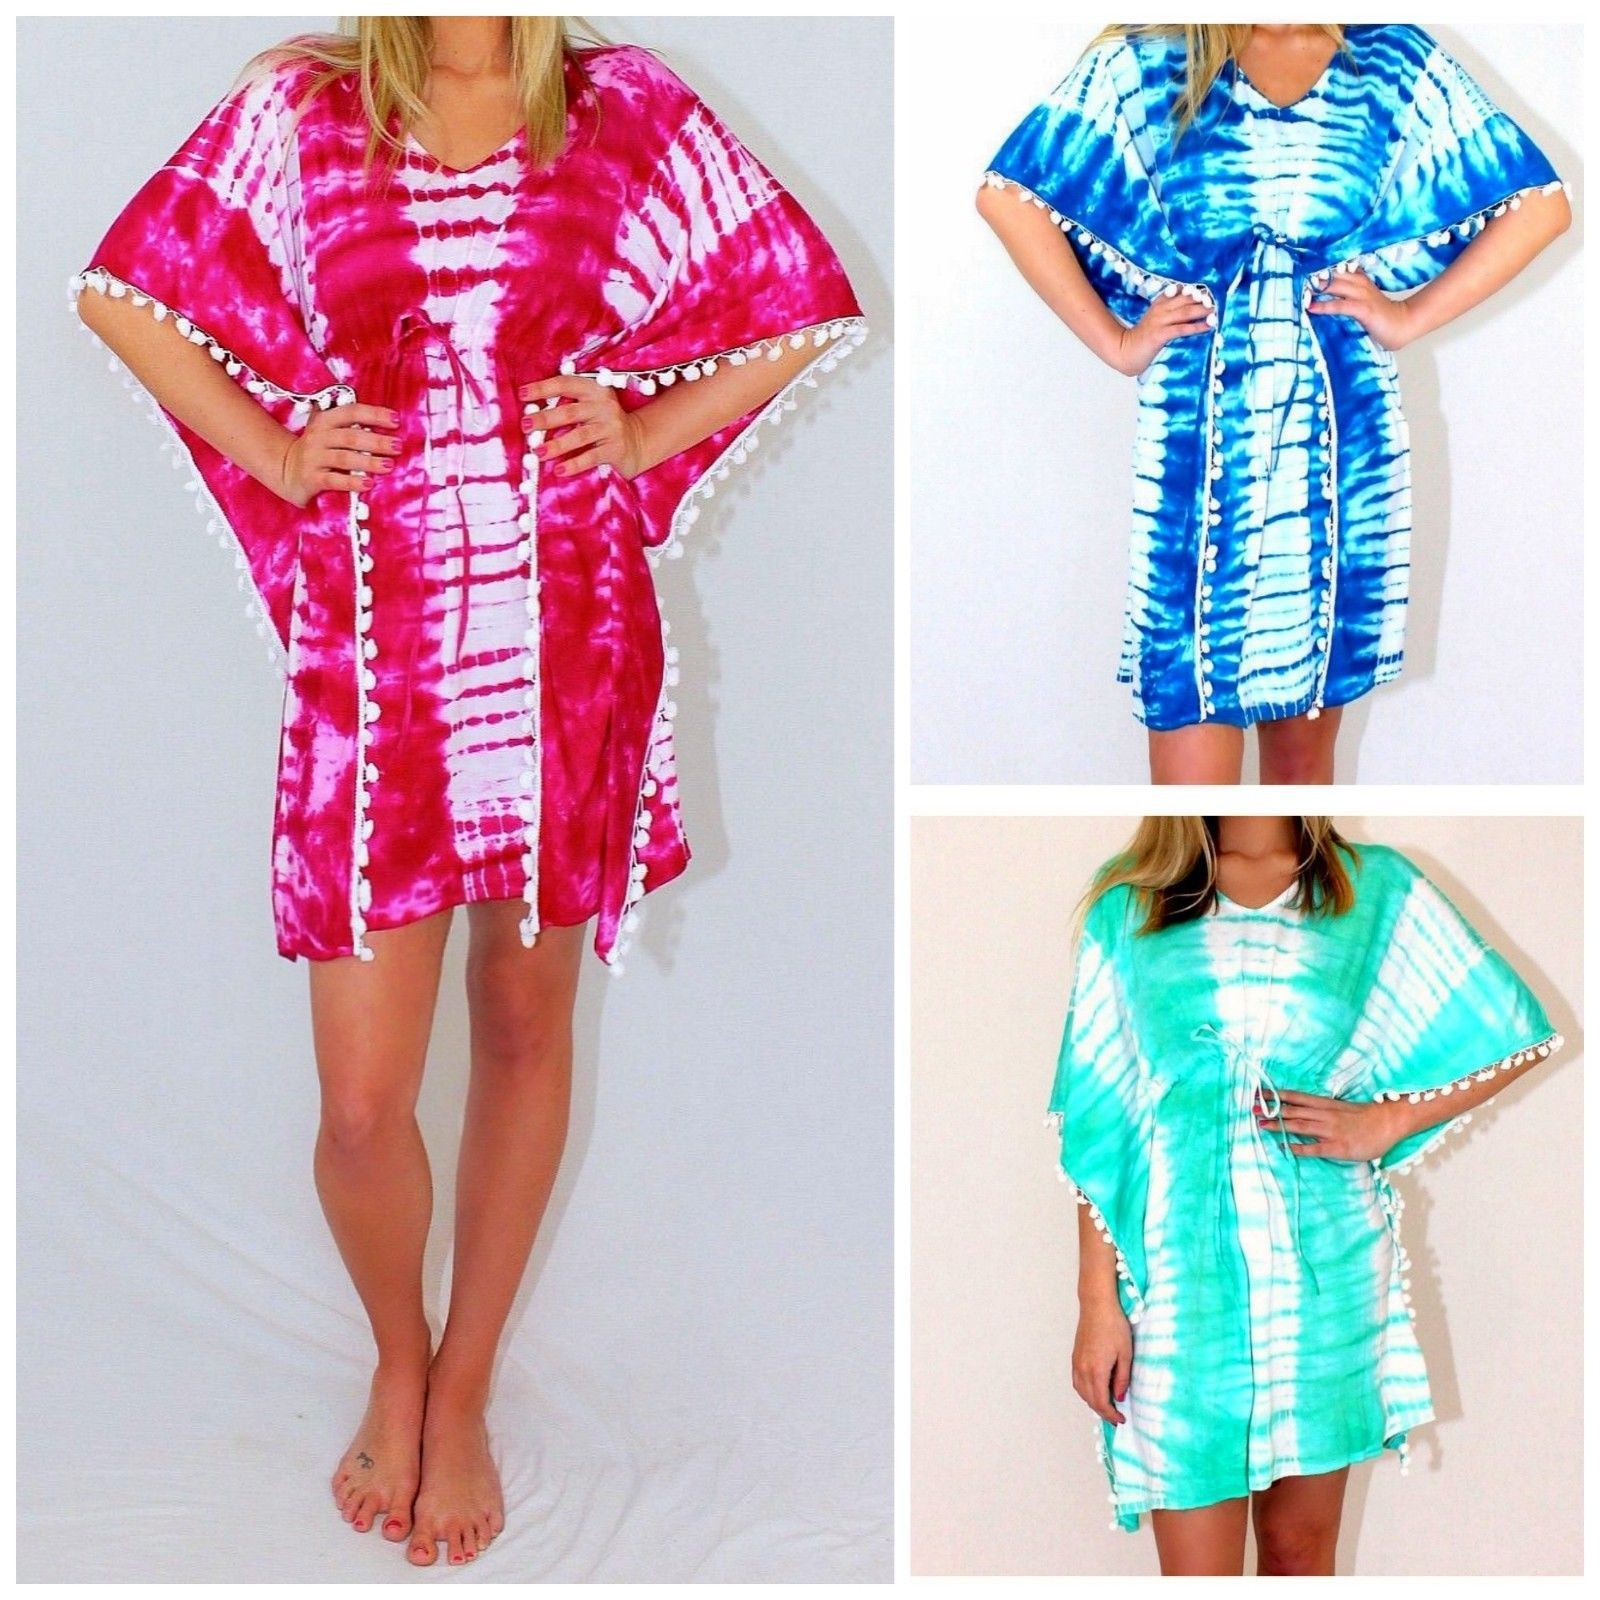 f6685ae36d Tie Dyed Ombre Boho Beach Pom Pom Fringe Kaftan Tunic Cover Up Dress 5  Colors BACK IN STOCK!| eBay